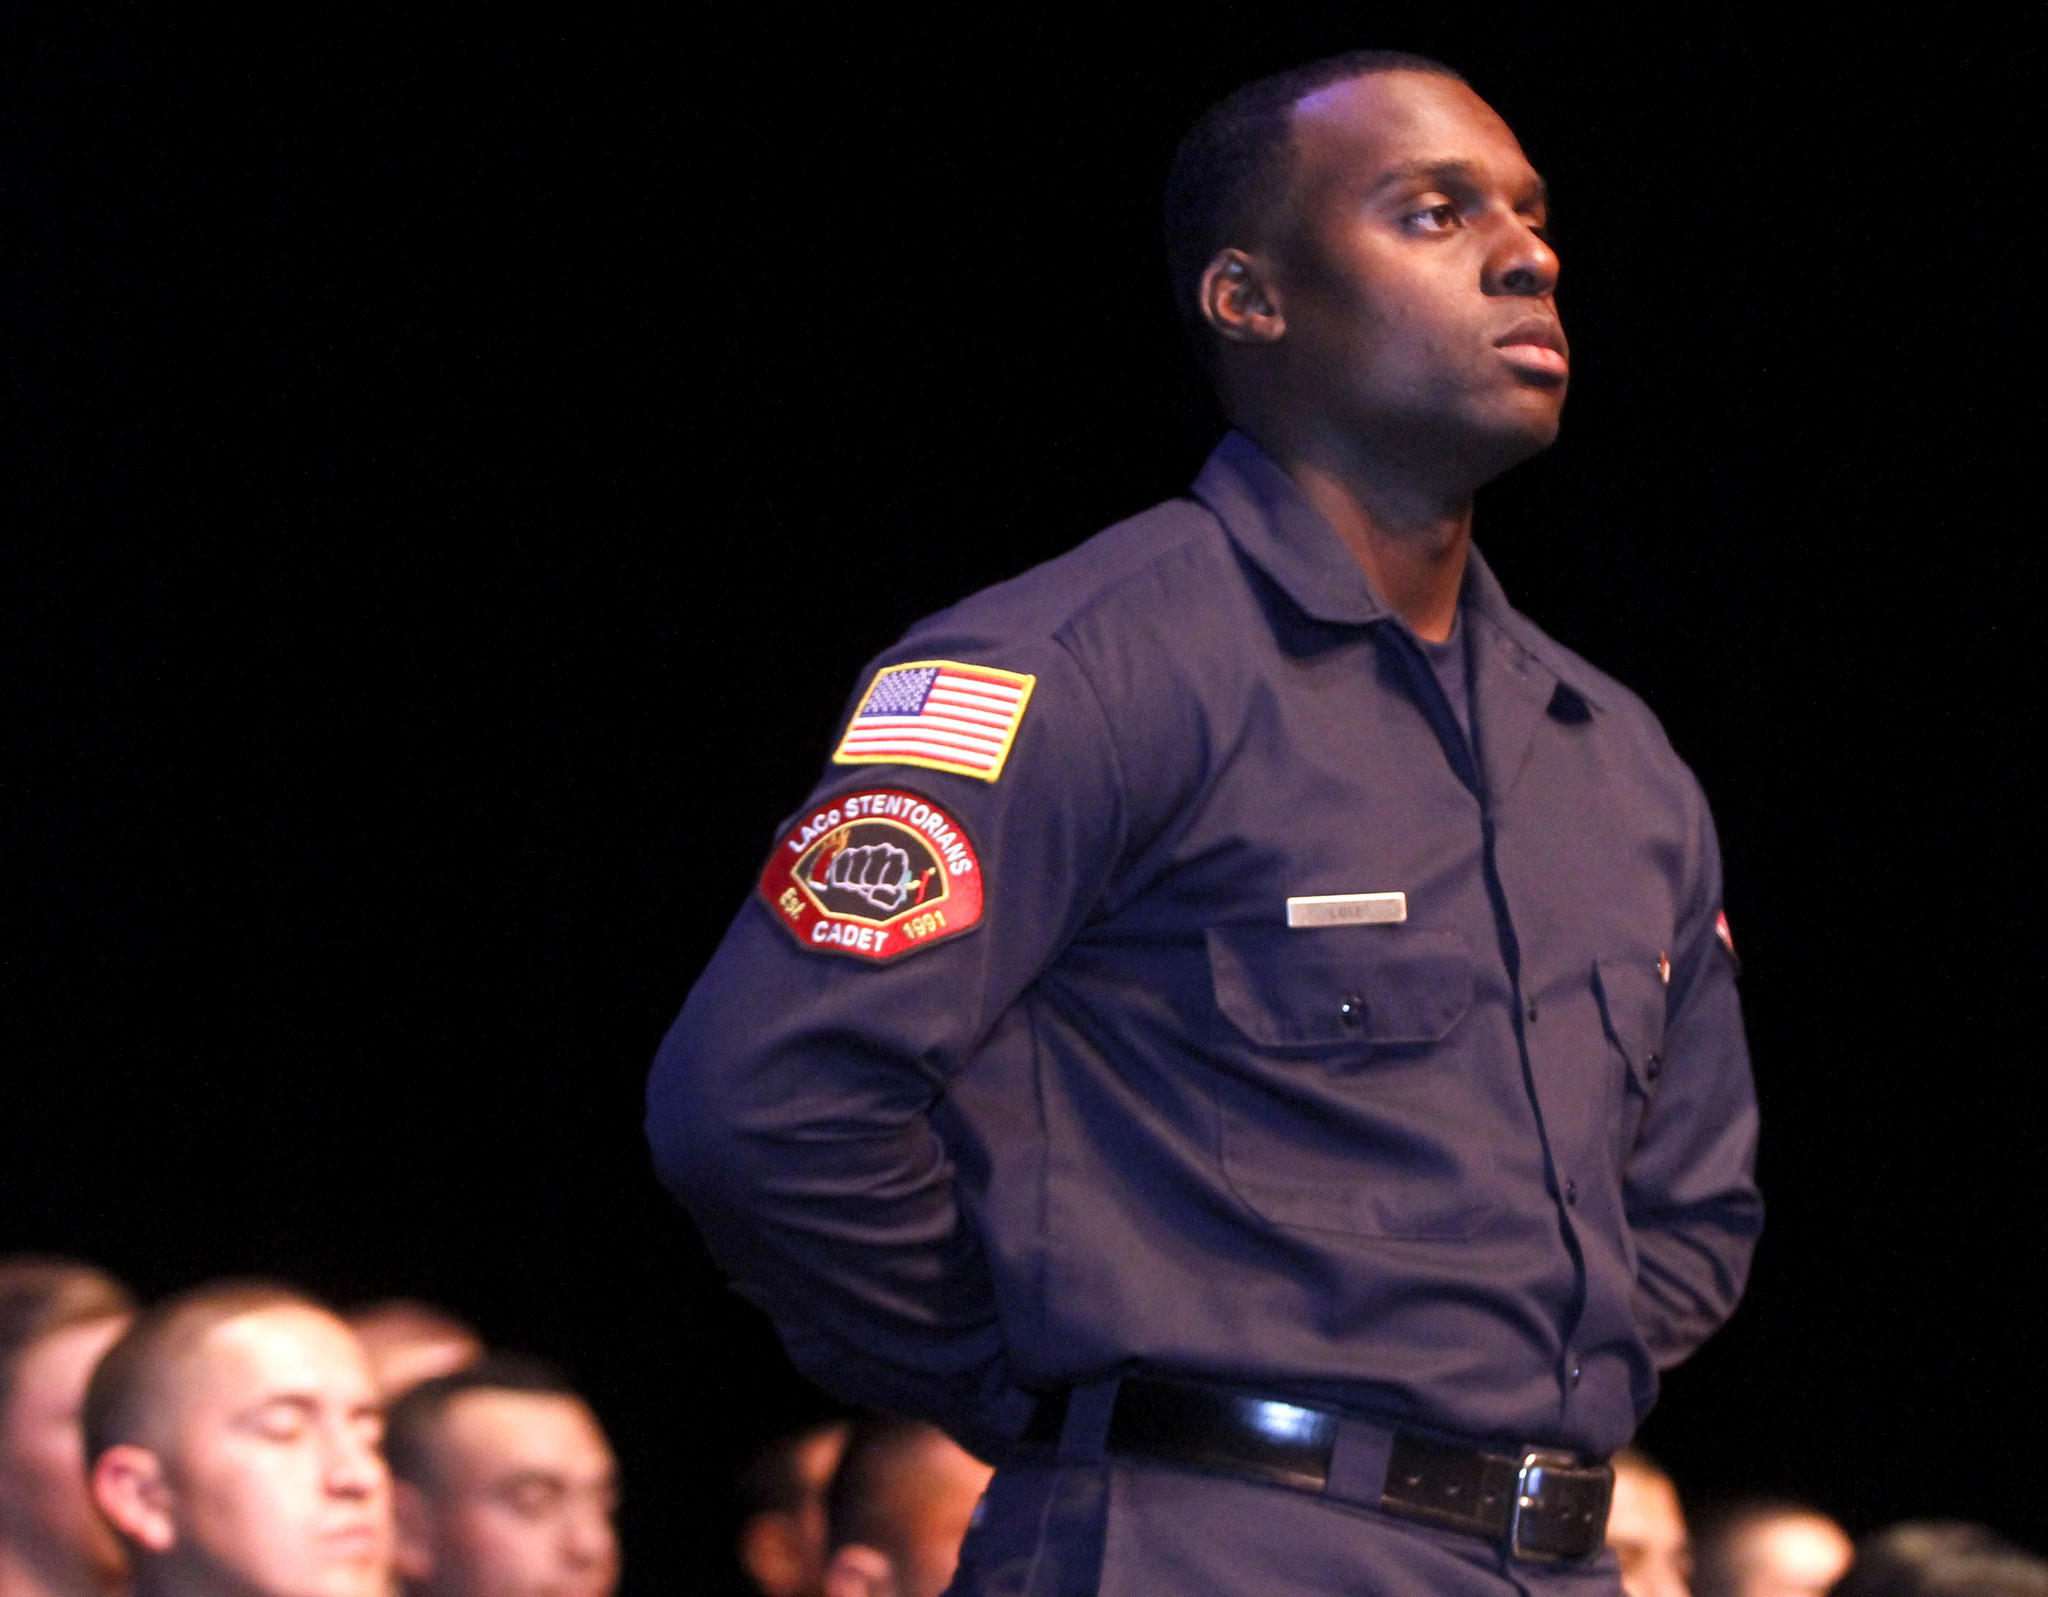 Donshay Luke received the community service award during the Verdugo Fire Academy Class XVI graduation ceremony at Glendale College on Saturday, January 4, 2014.